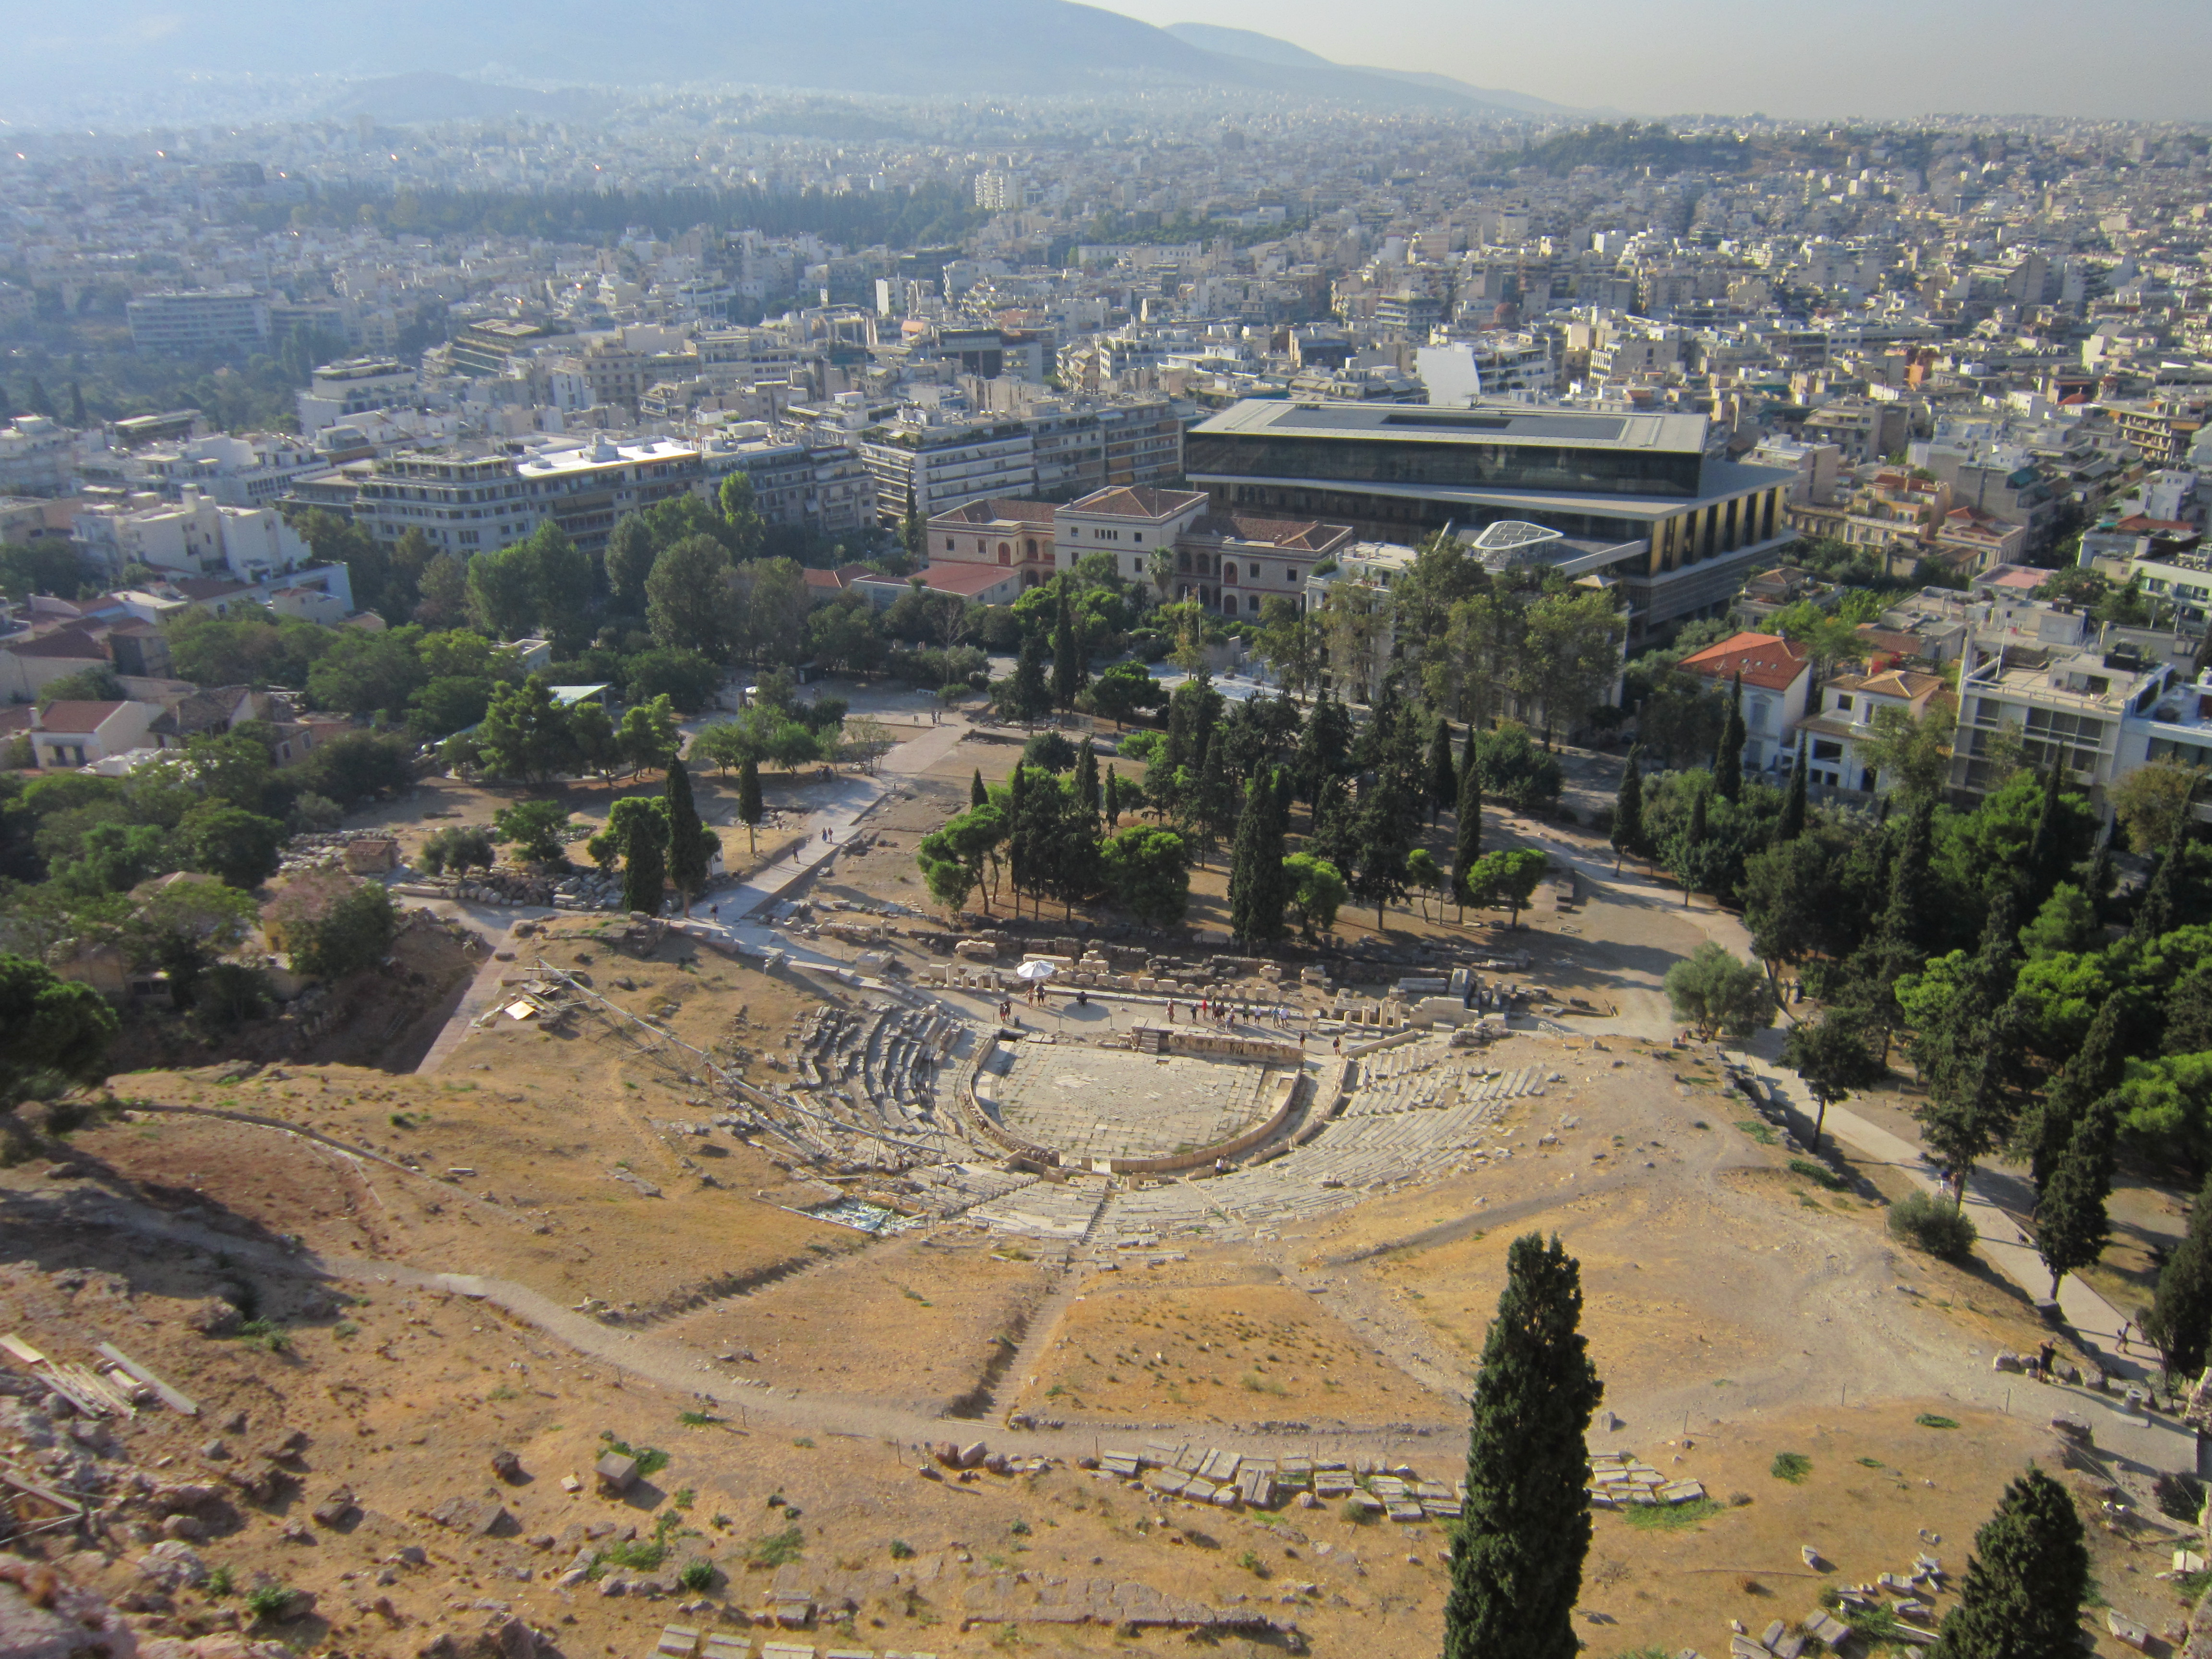 Looking down onto the Theatre of Dionysus